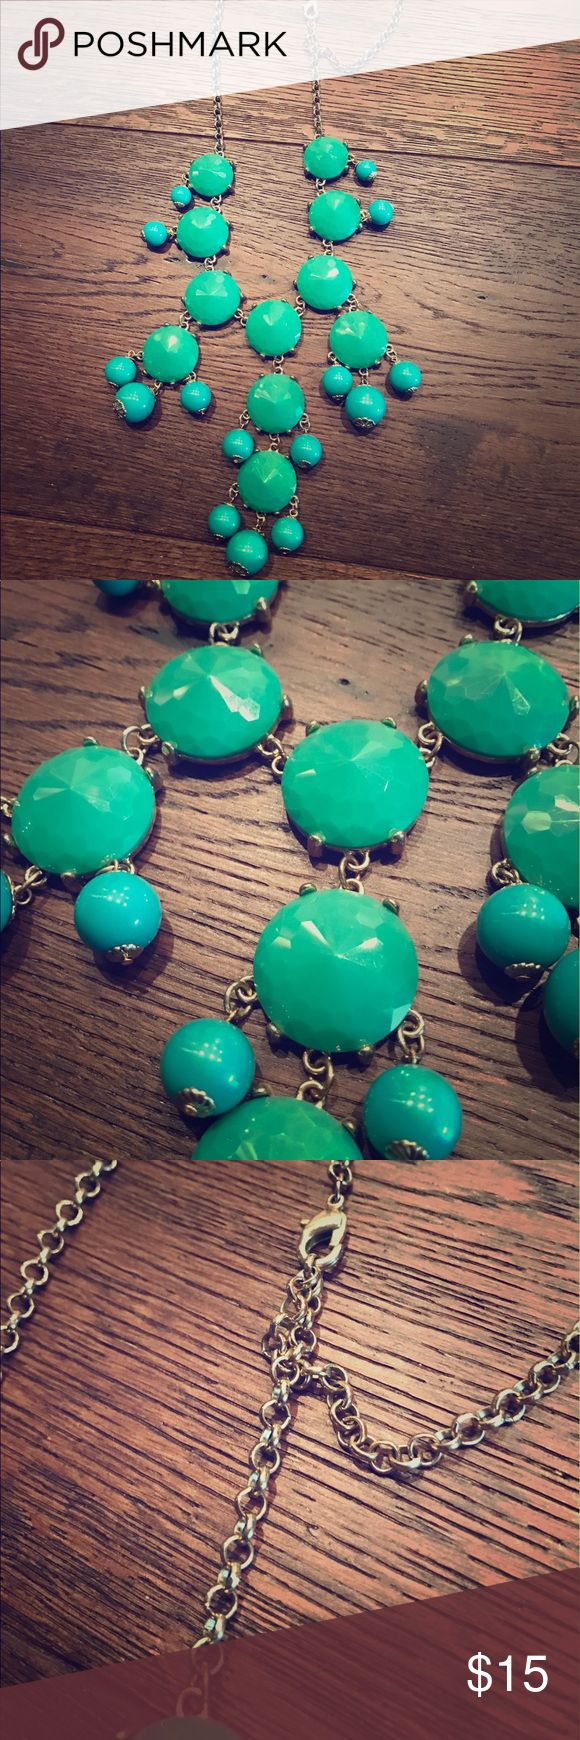 Turquoise Bubble Necklace Turquoise bubble necklace. Completes any outfit Jewelry Necklaces